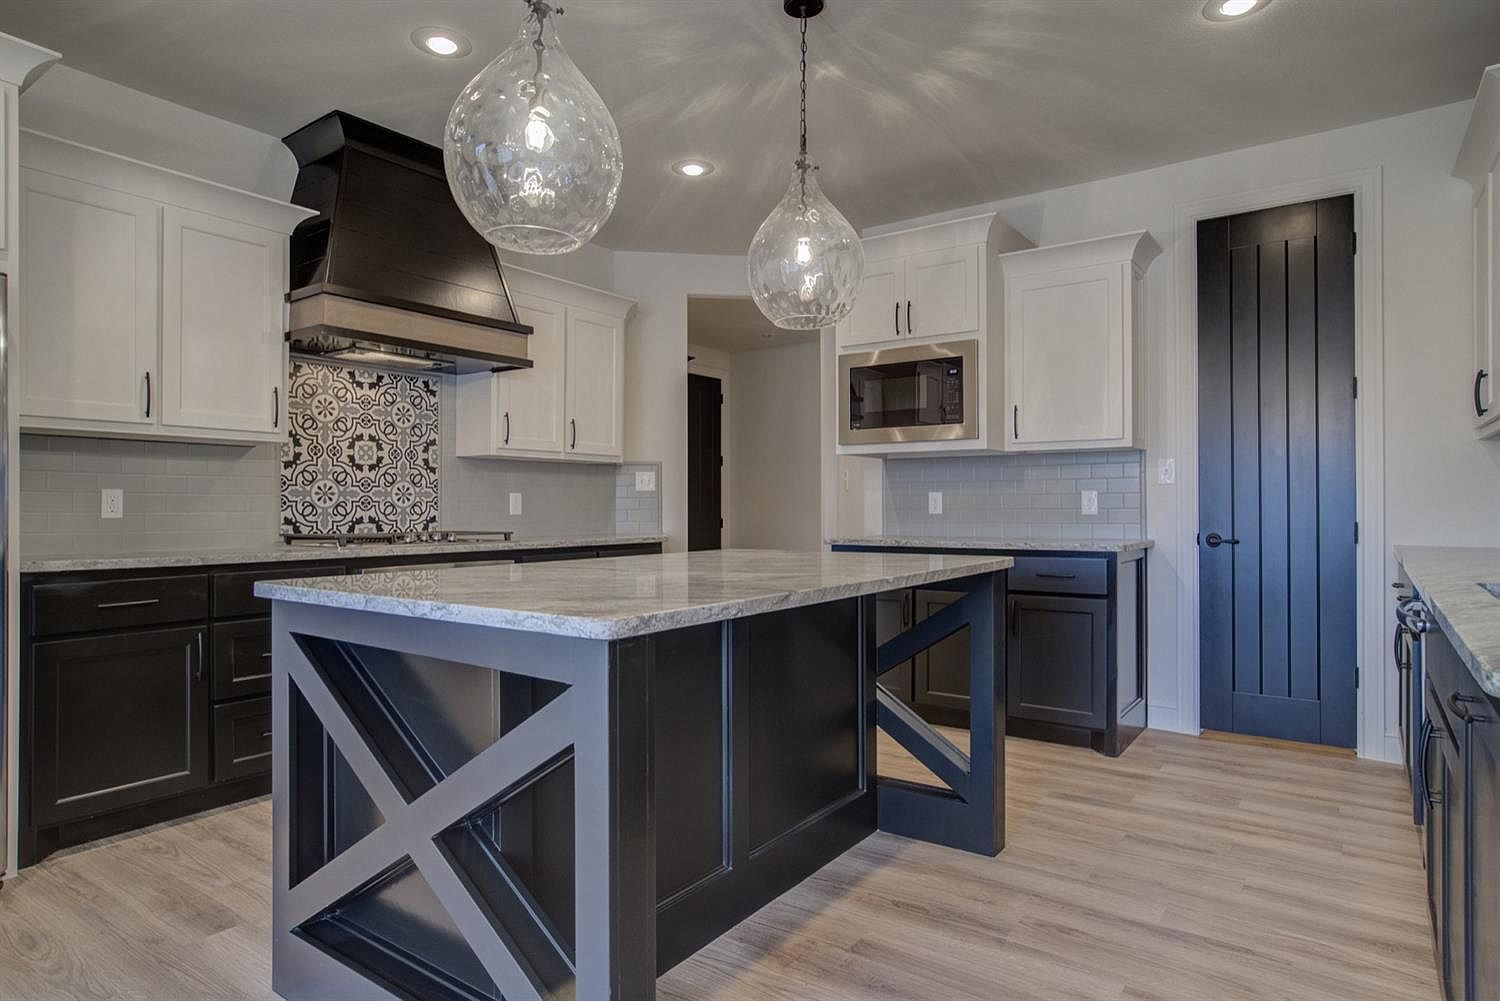 Carter Home Remodeling offers complete solutions for ...